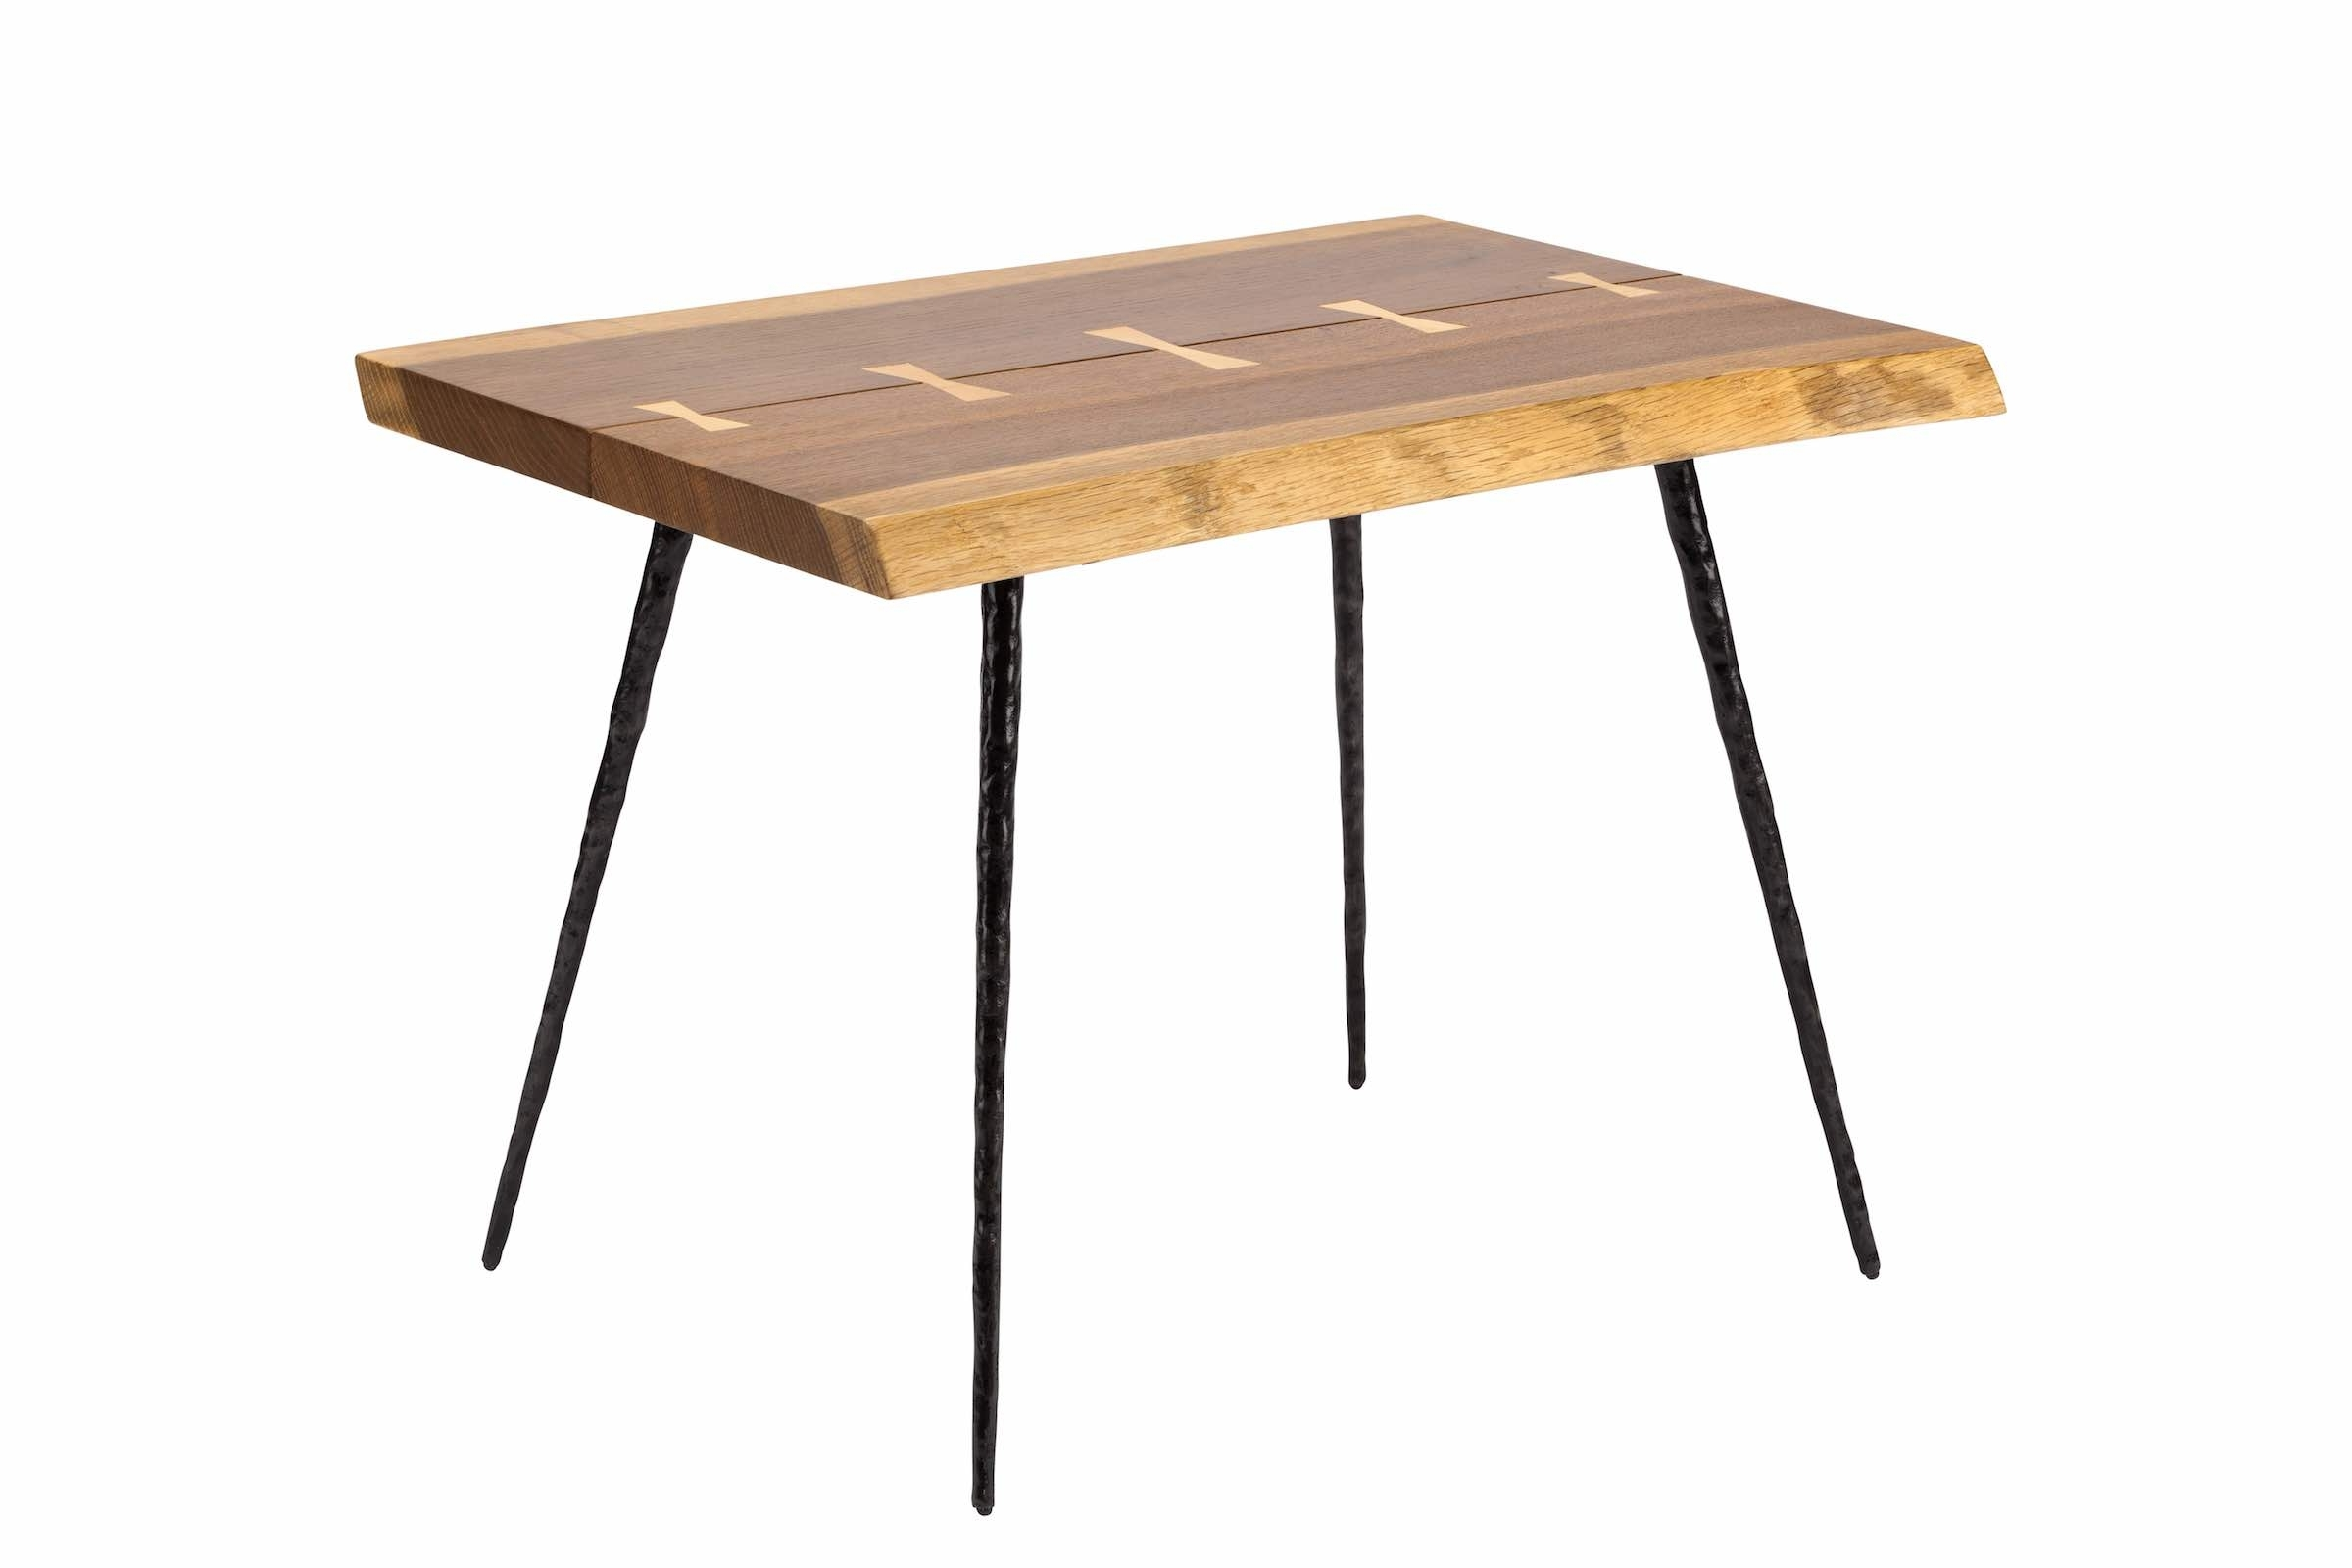 Nexa Side Table In Smoked Oak And Black Cast Iron Legs In Most Recently Released Smoked Oak Side Tables (View 9 of 20)